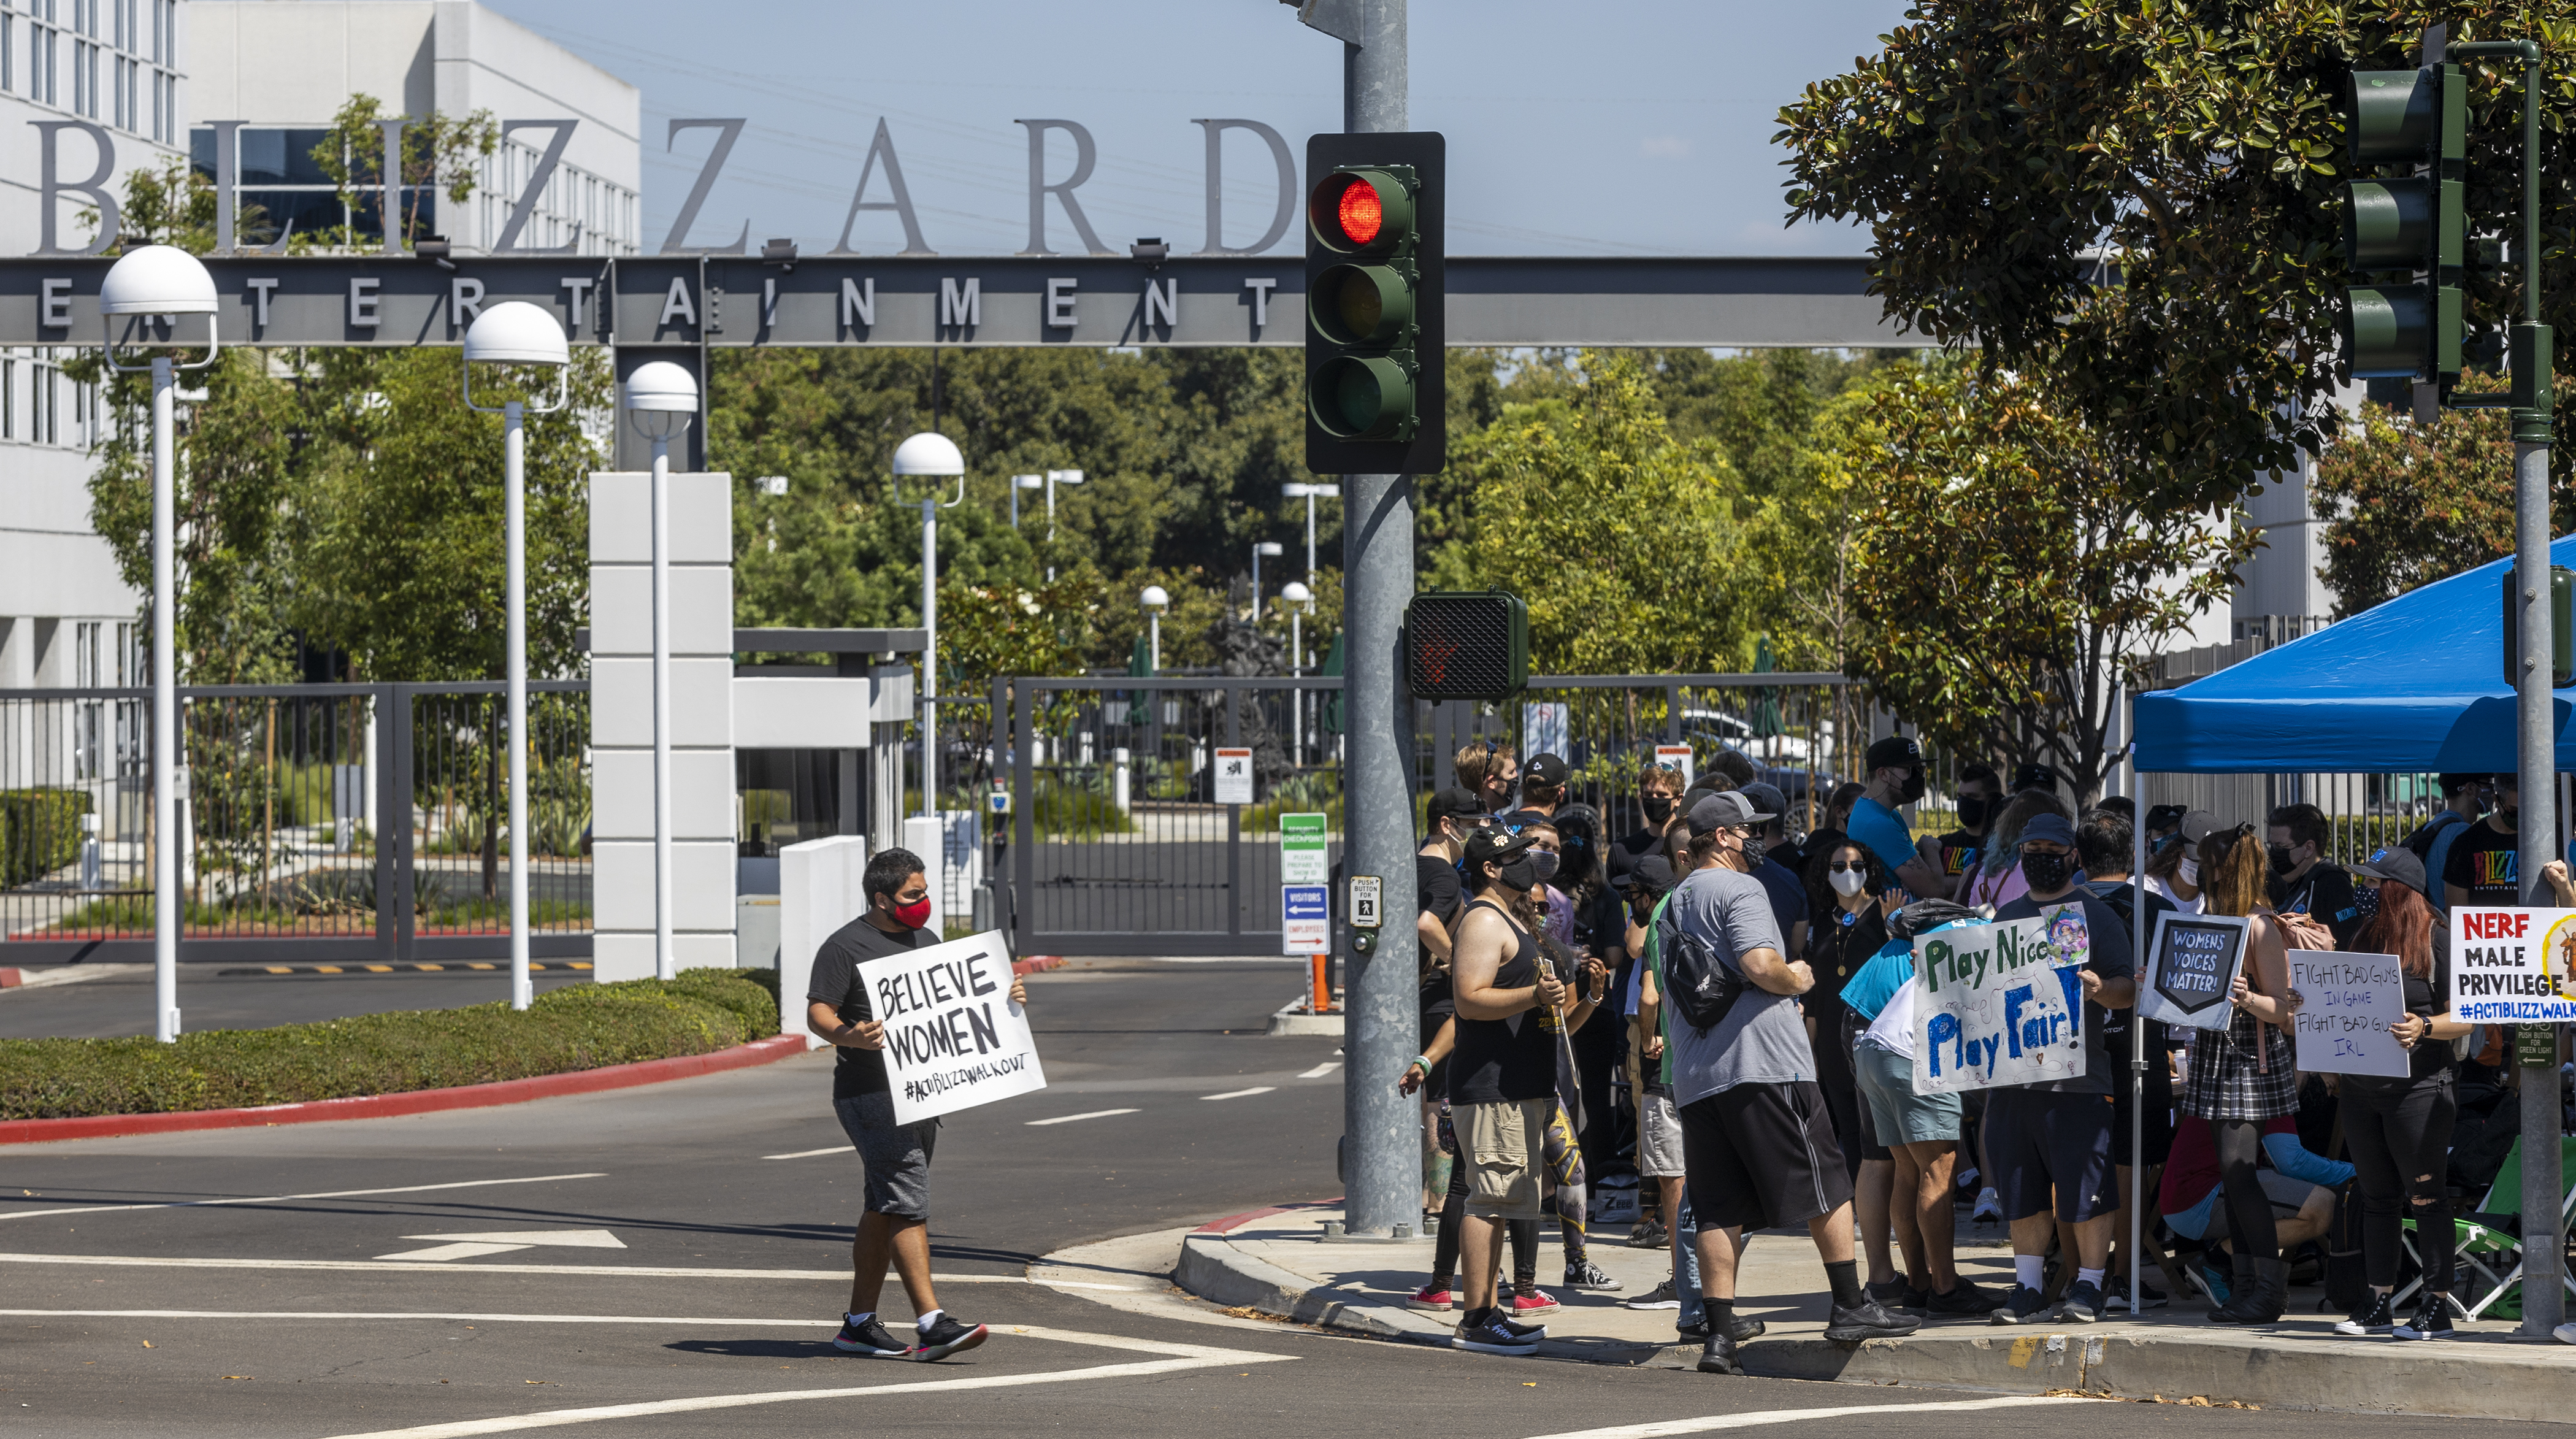 Activision Blizzard is facing more than protests over its workplace conditions